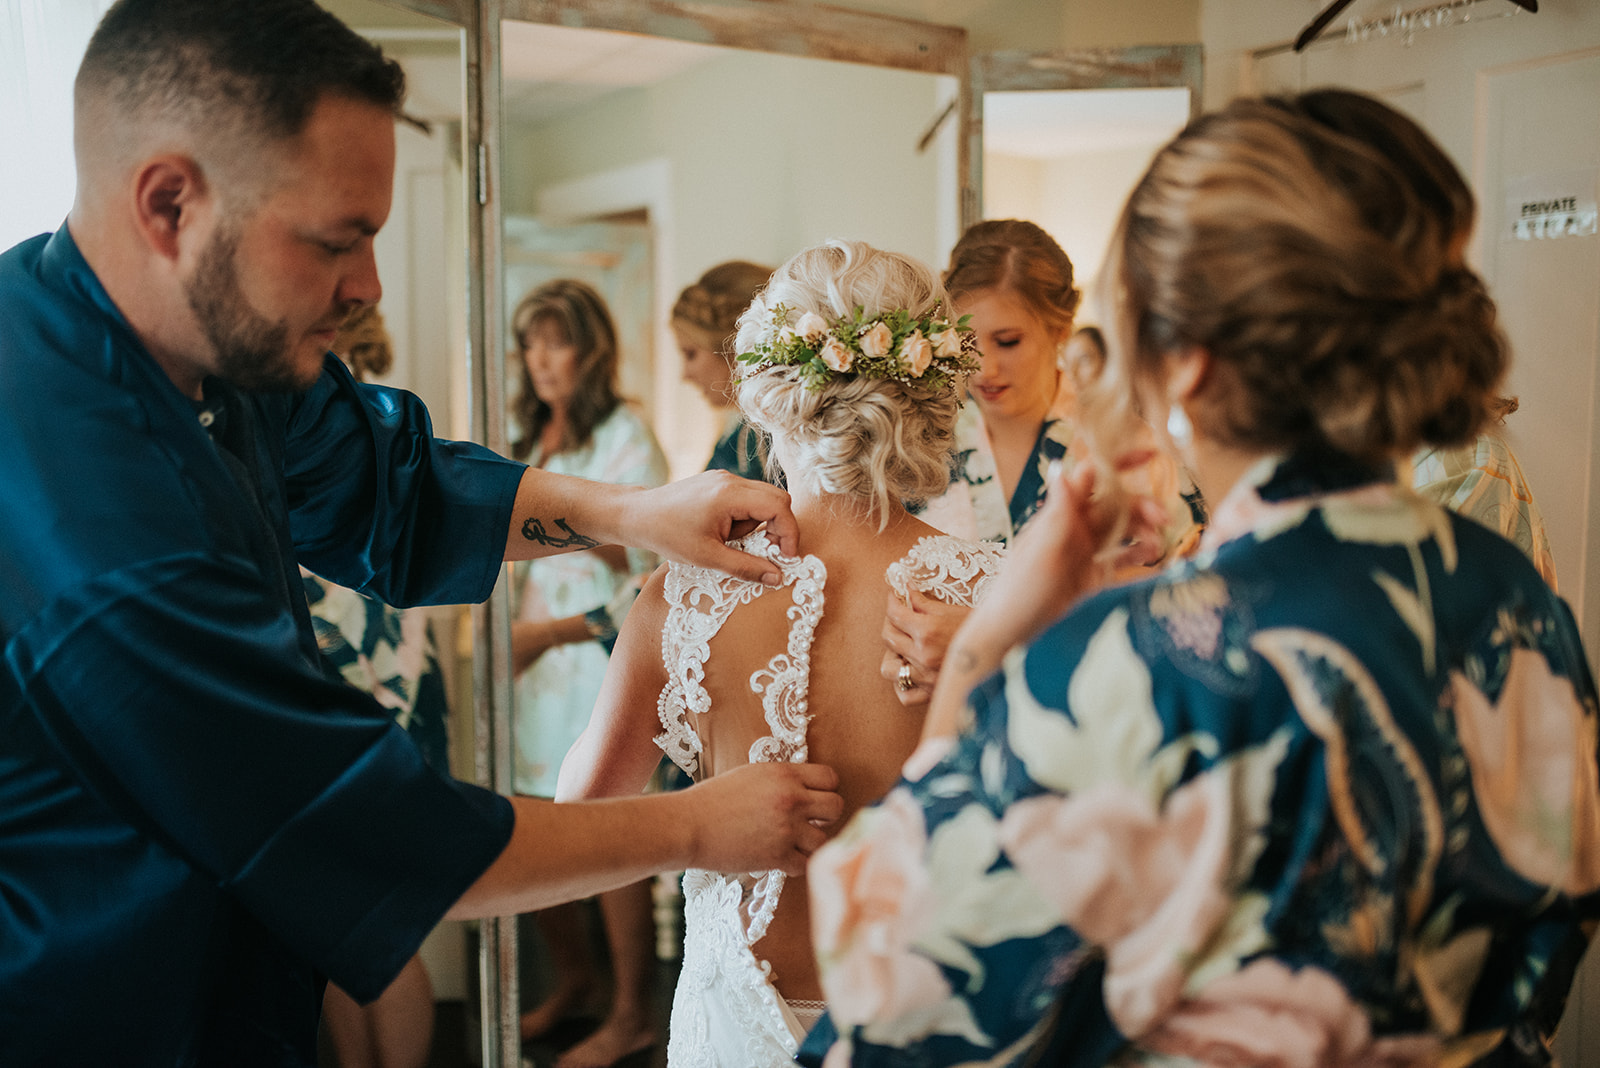 overthevineswisconsinwedding_0278.jpg